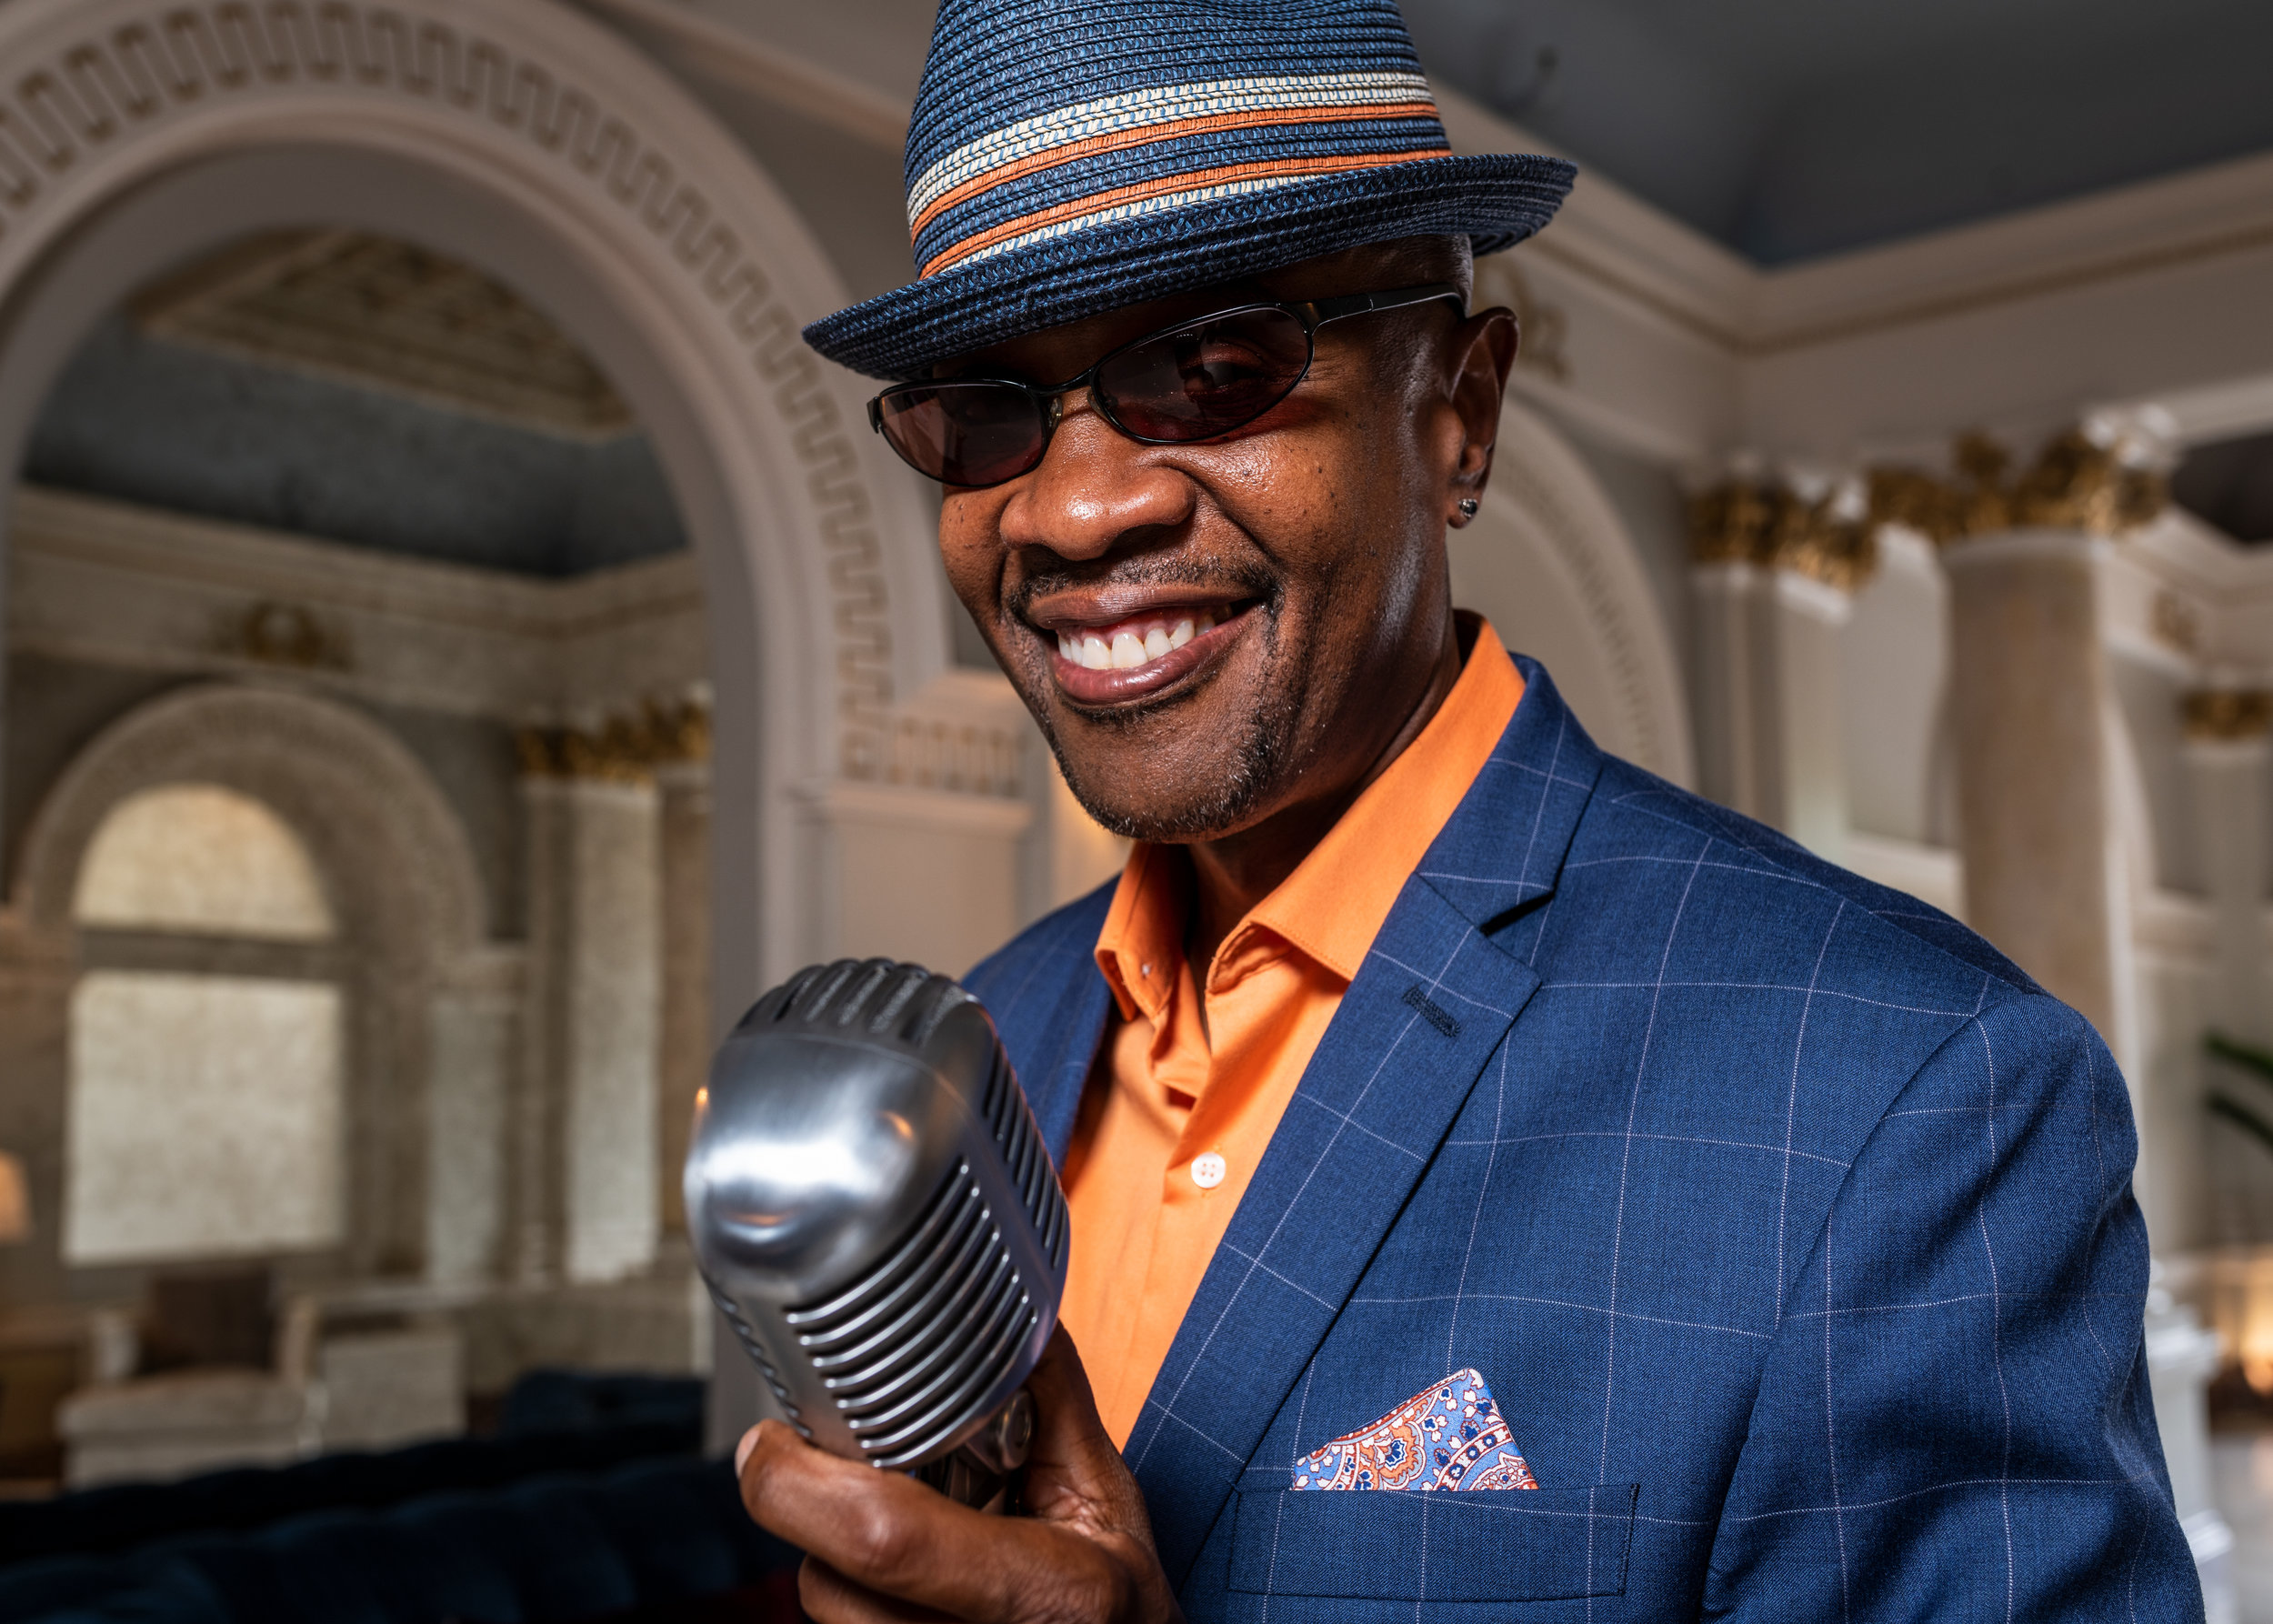 Vocalist Kevin Valentine for Philadelphia Jazz Project